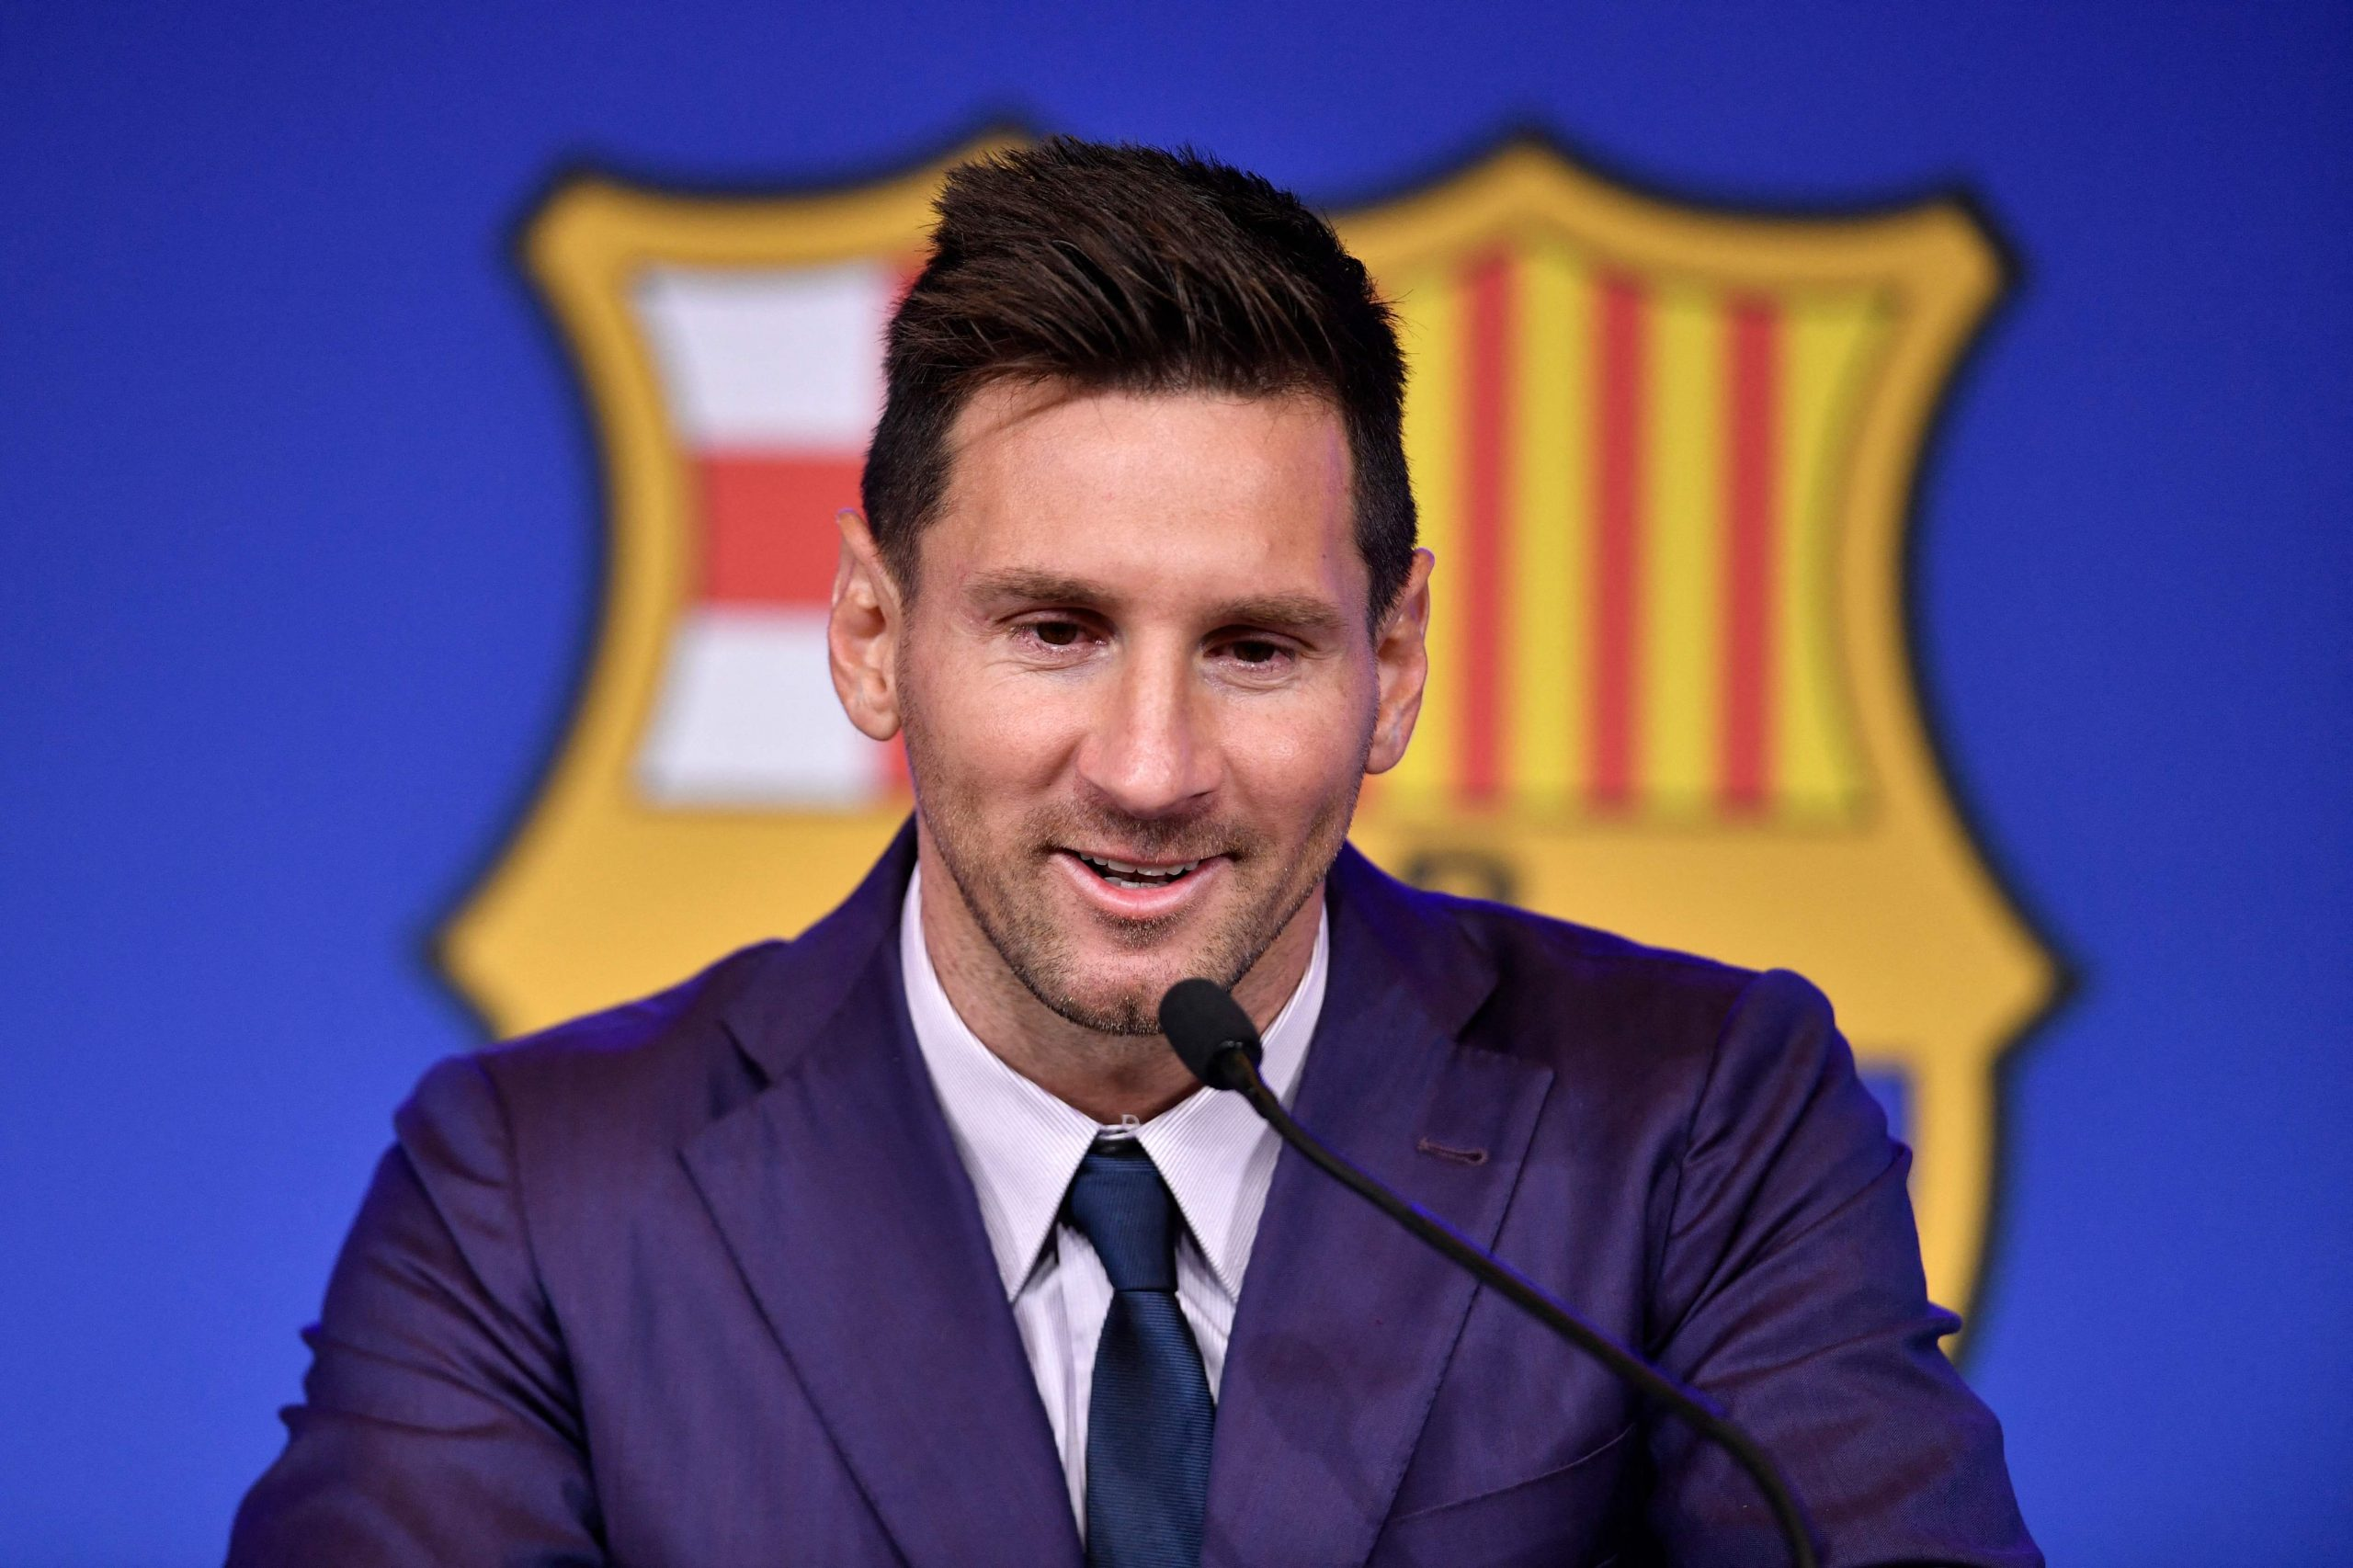 Lionel Messi reaches agreement on move to PSG